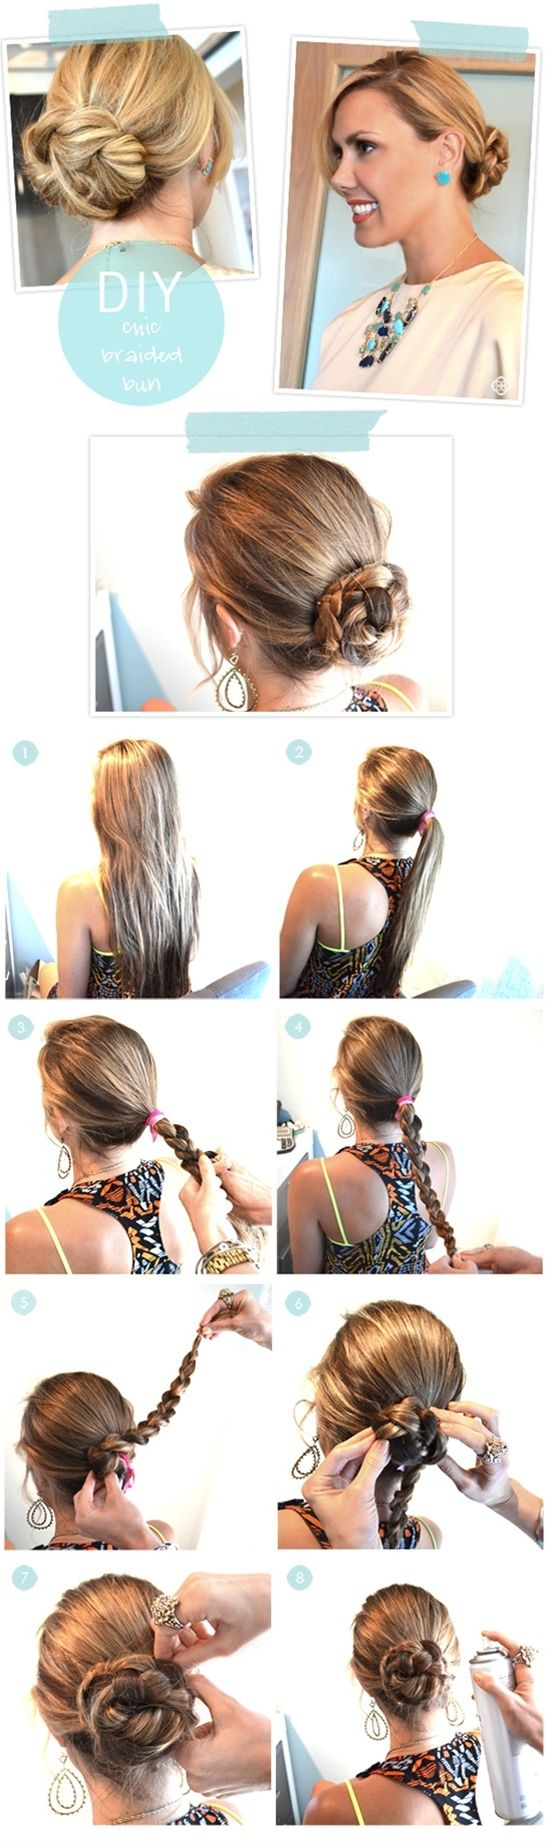 Diy chic braided bun hair tutorial kendrascot pinterest most